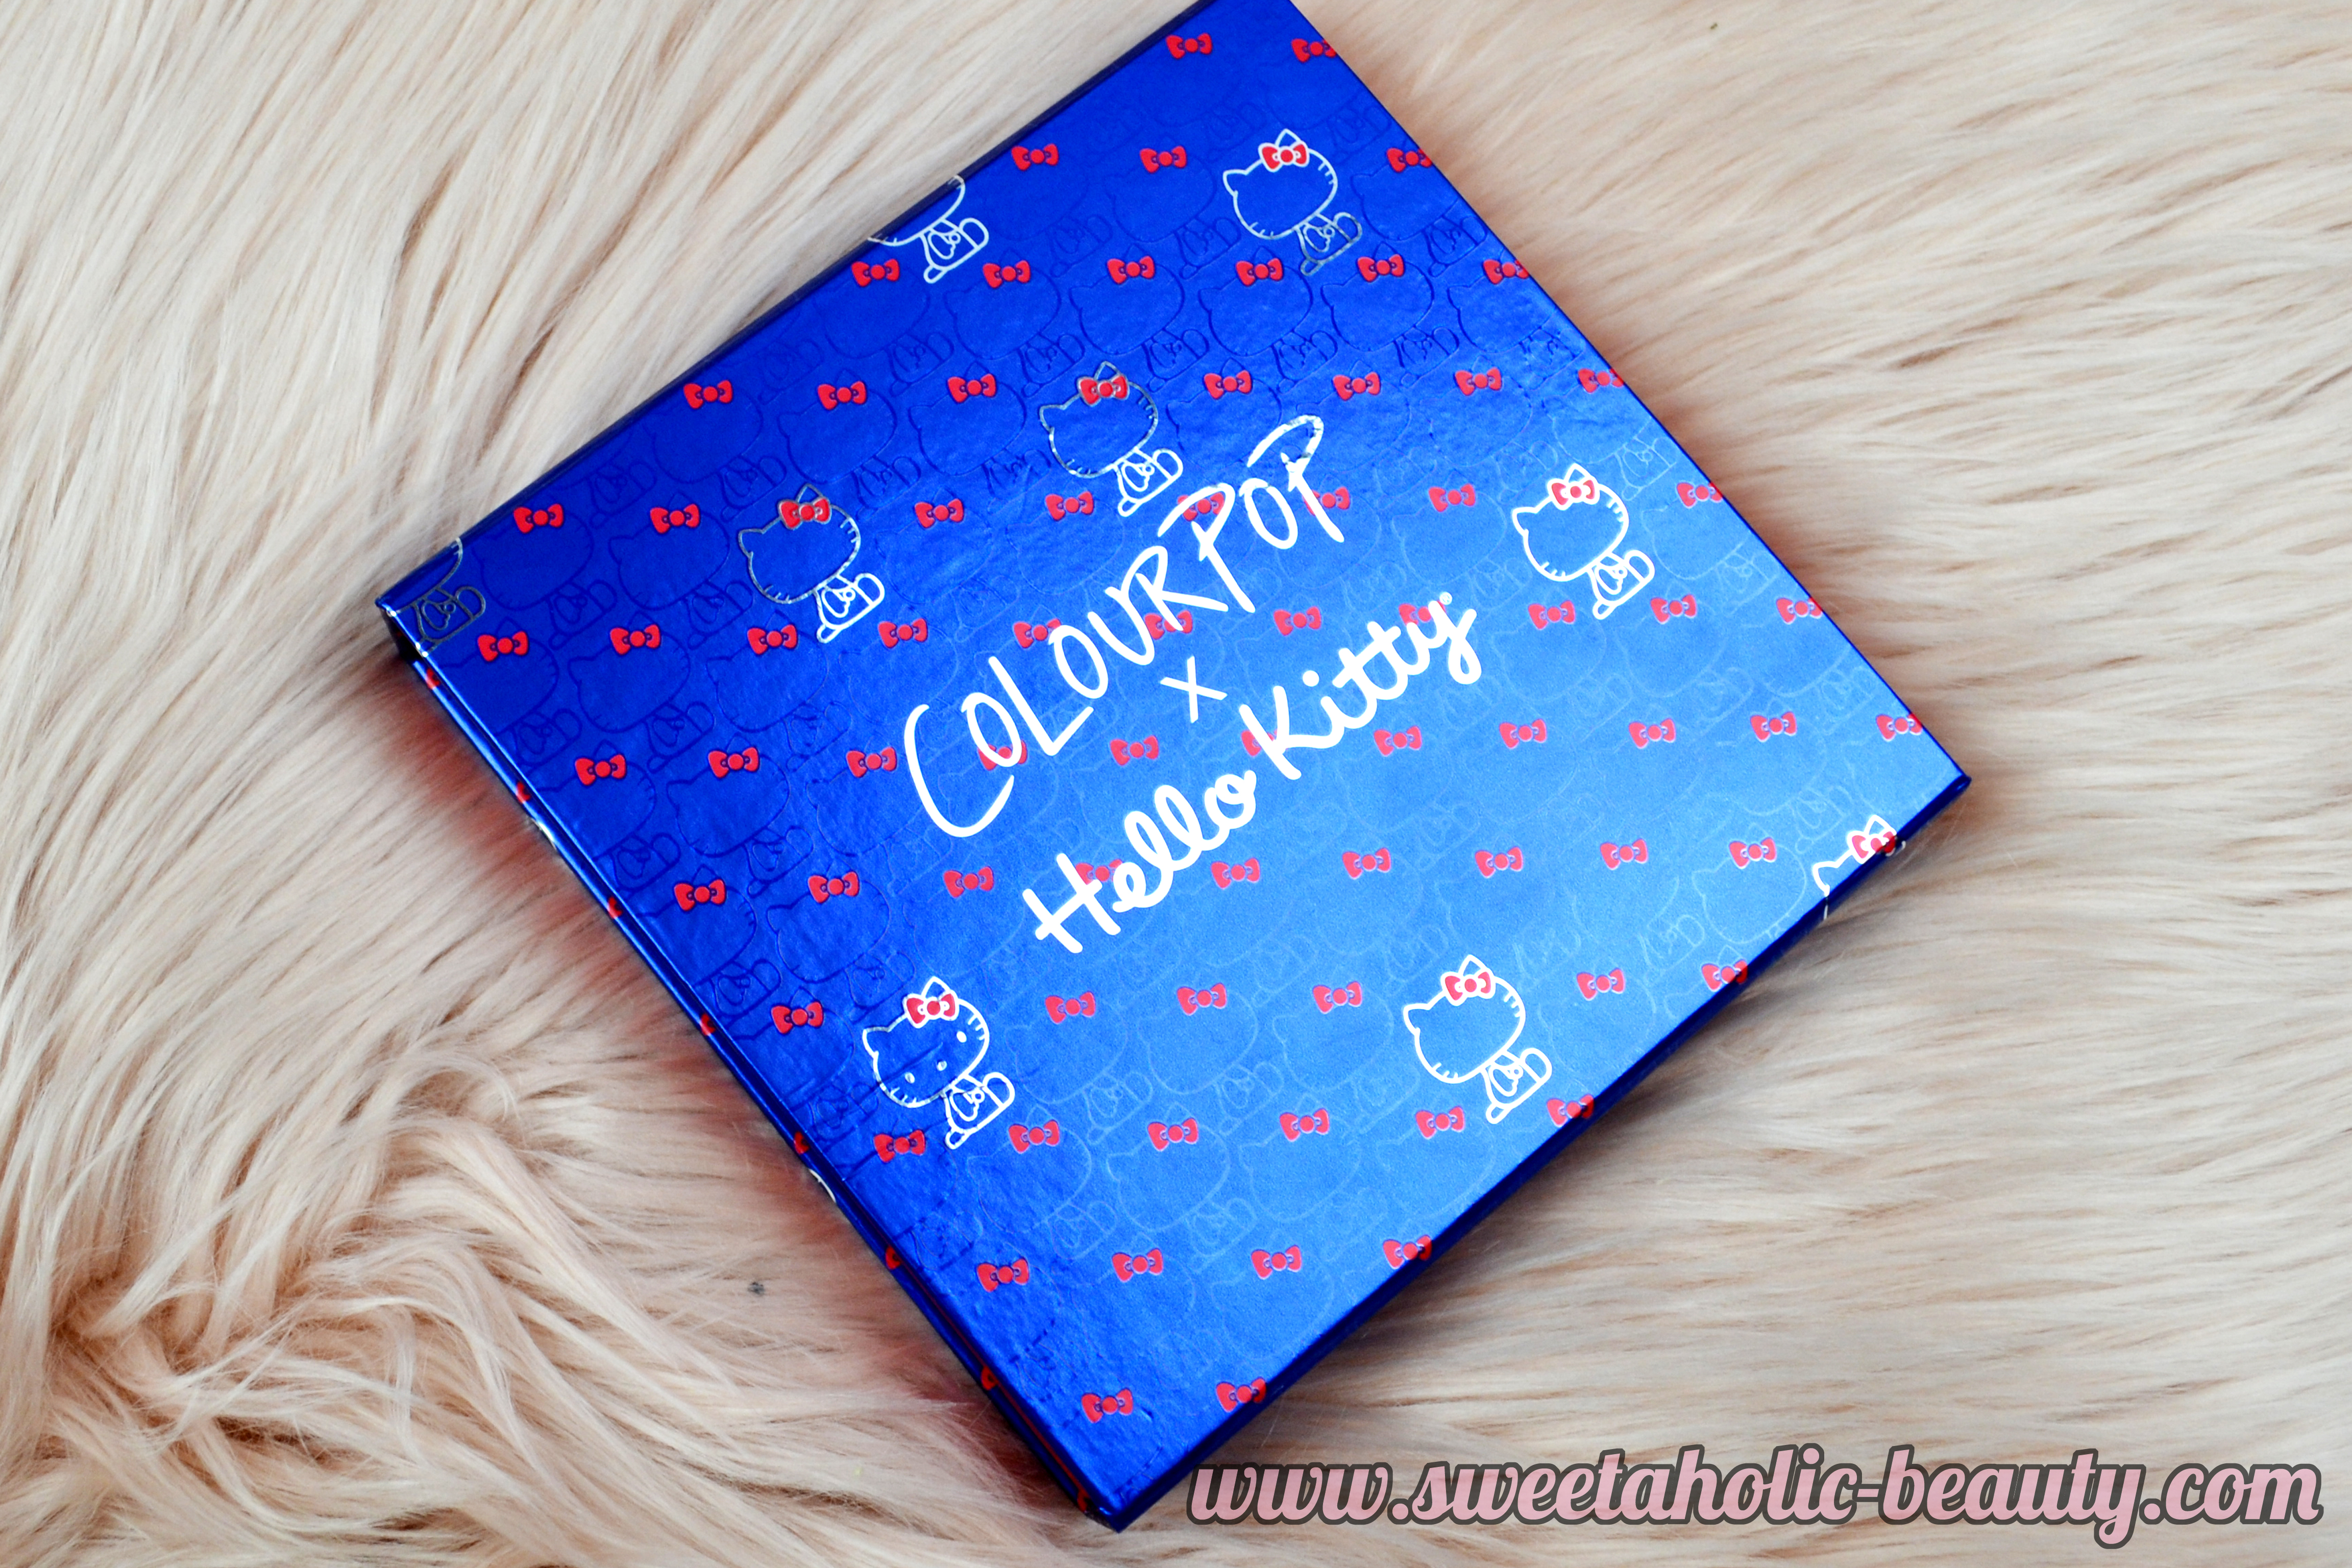 Colourpop x Hello Kitty Hello Pretty Collection Review & Swatches - Sweetaholic Beauty